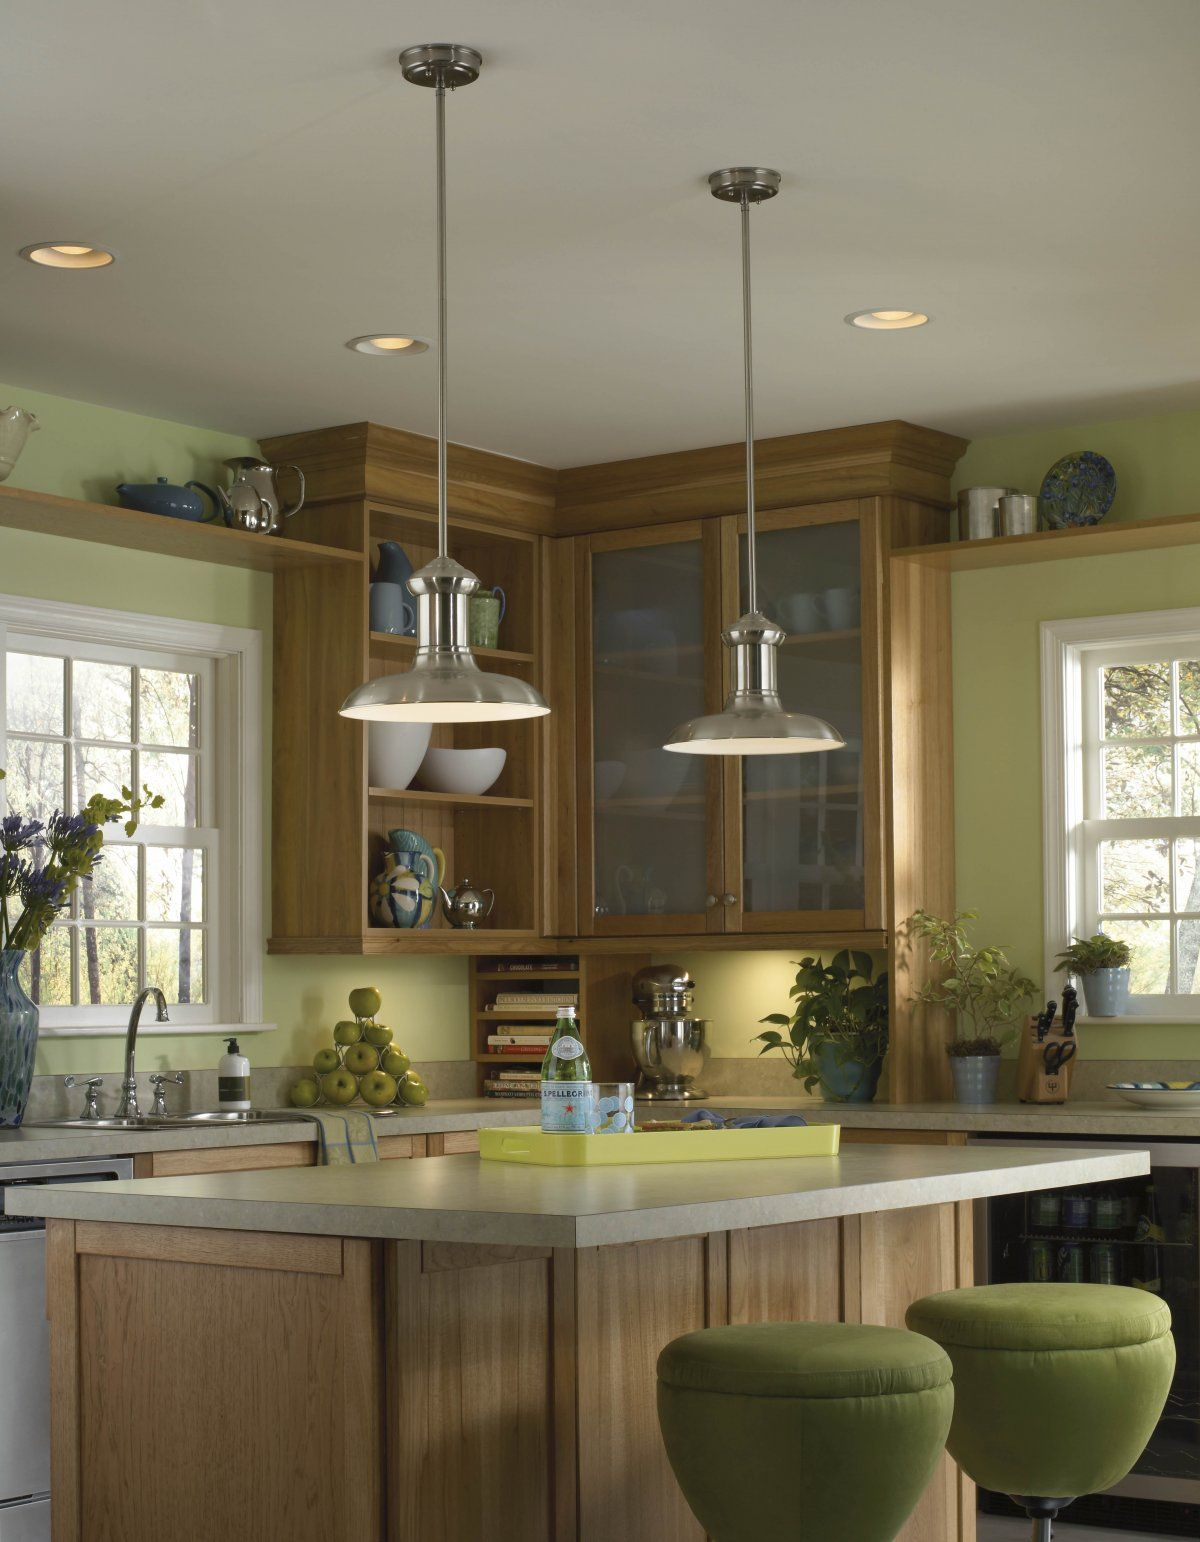 Kitchen Inspiration color palate Great Two Funnel Pendant